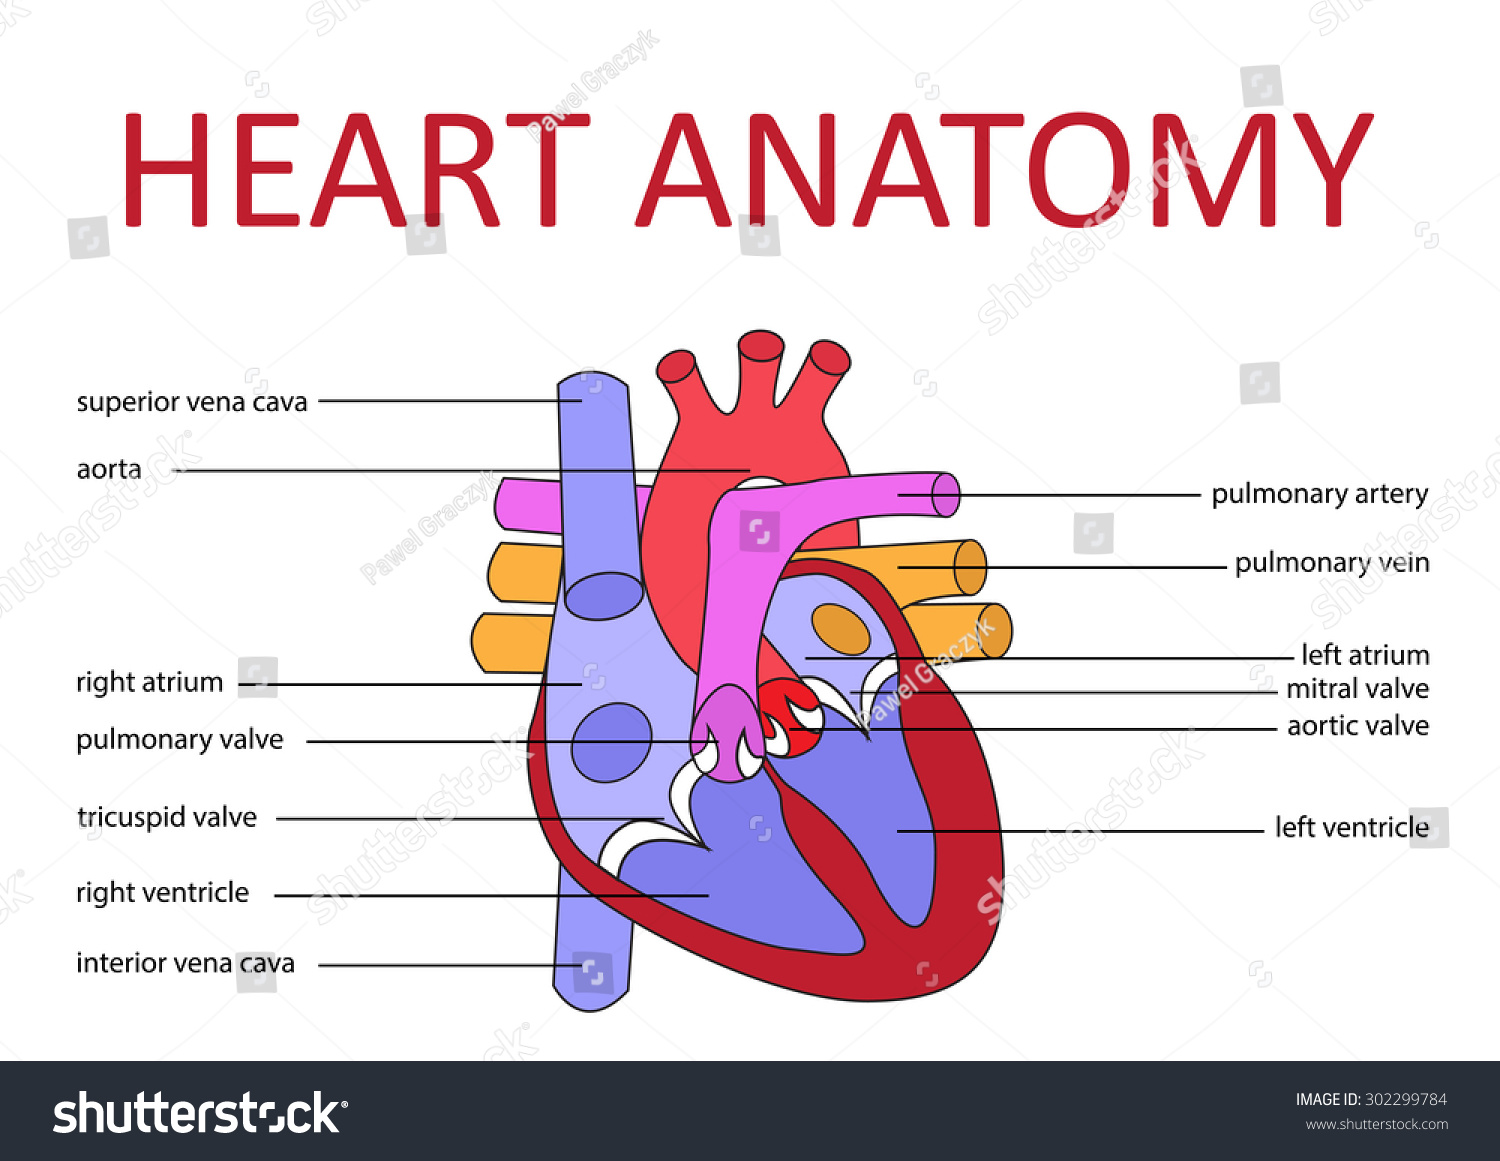 Human Heart Anatomy Schematic Diagram Vector Stock Vector (Royalty ...